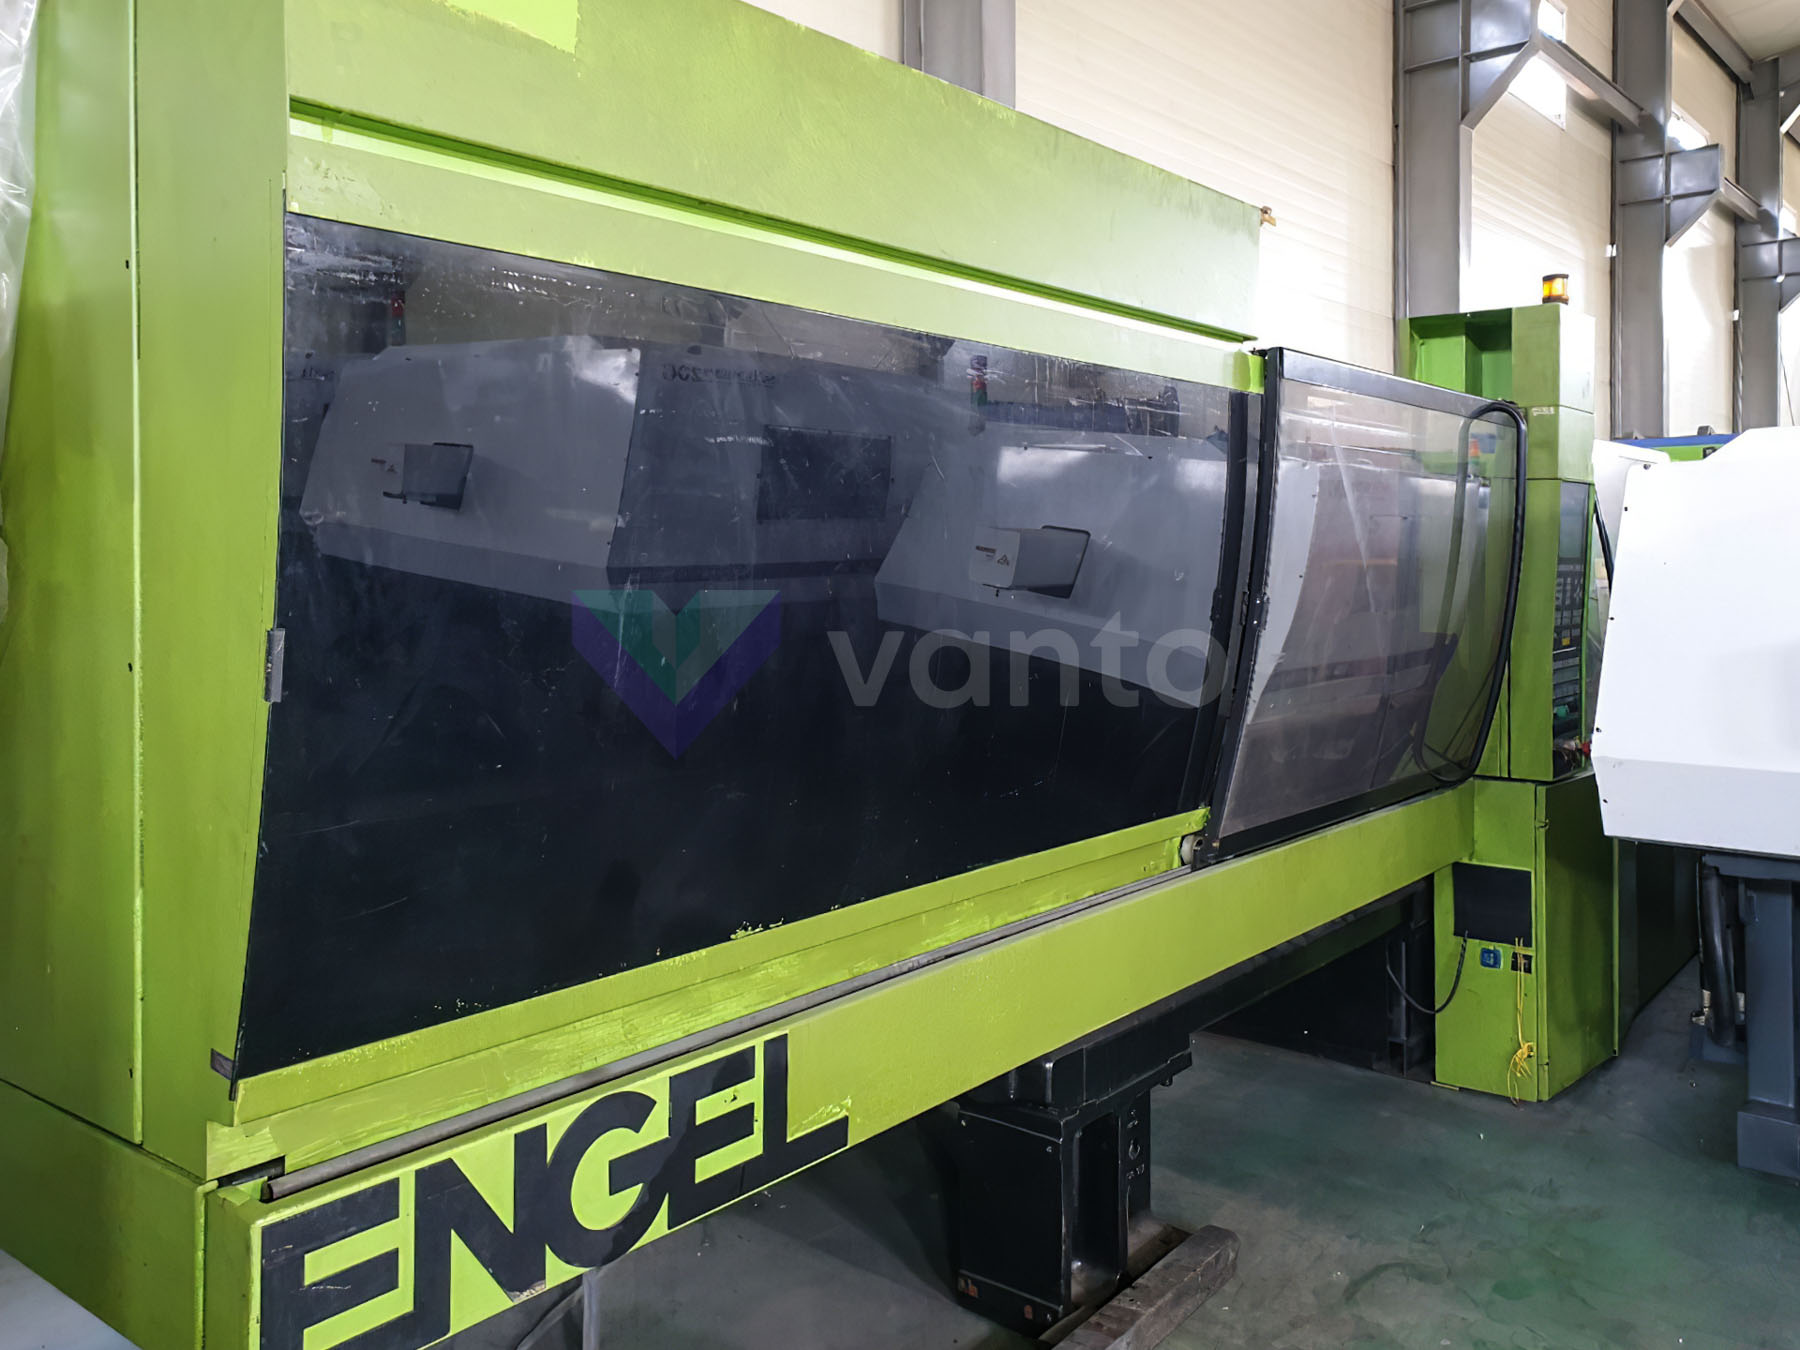 Machine de moulage par injection 300t ENGEL ES 750 / 300 HL PRO SERIES (2003) id10450